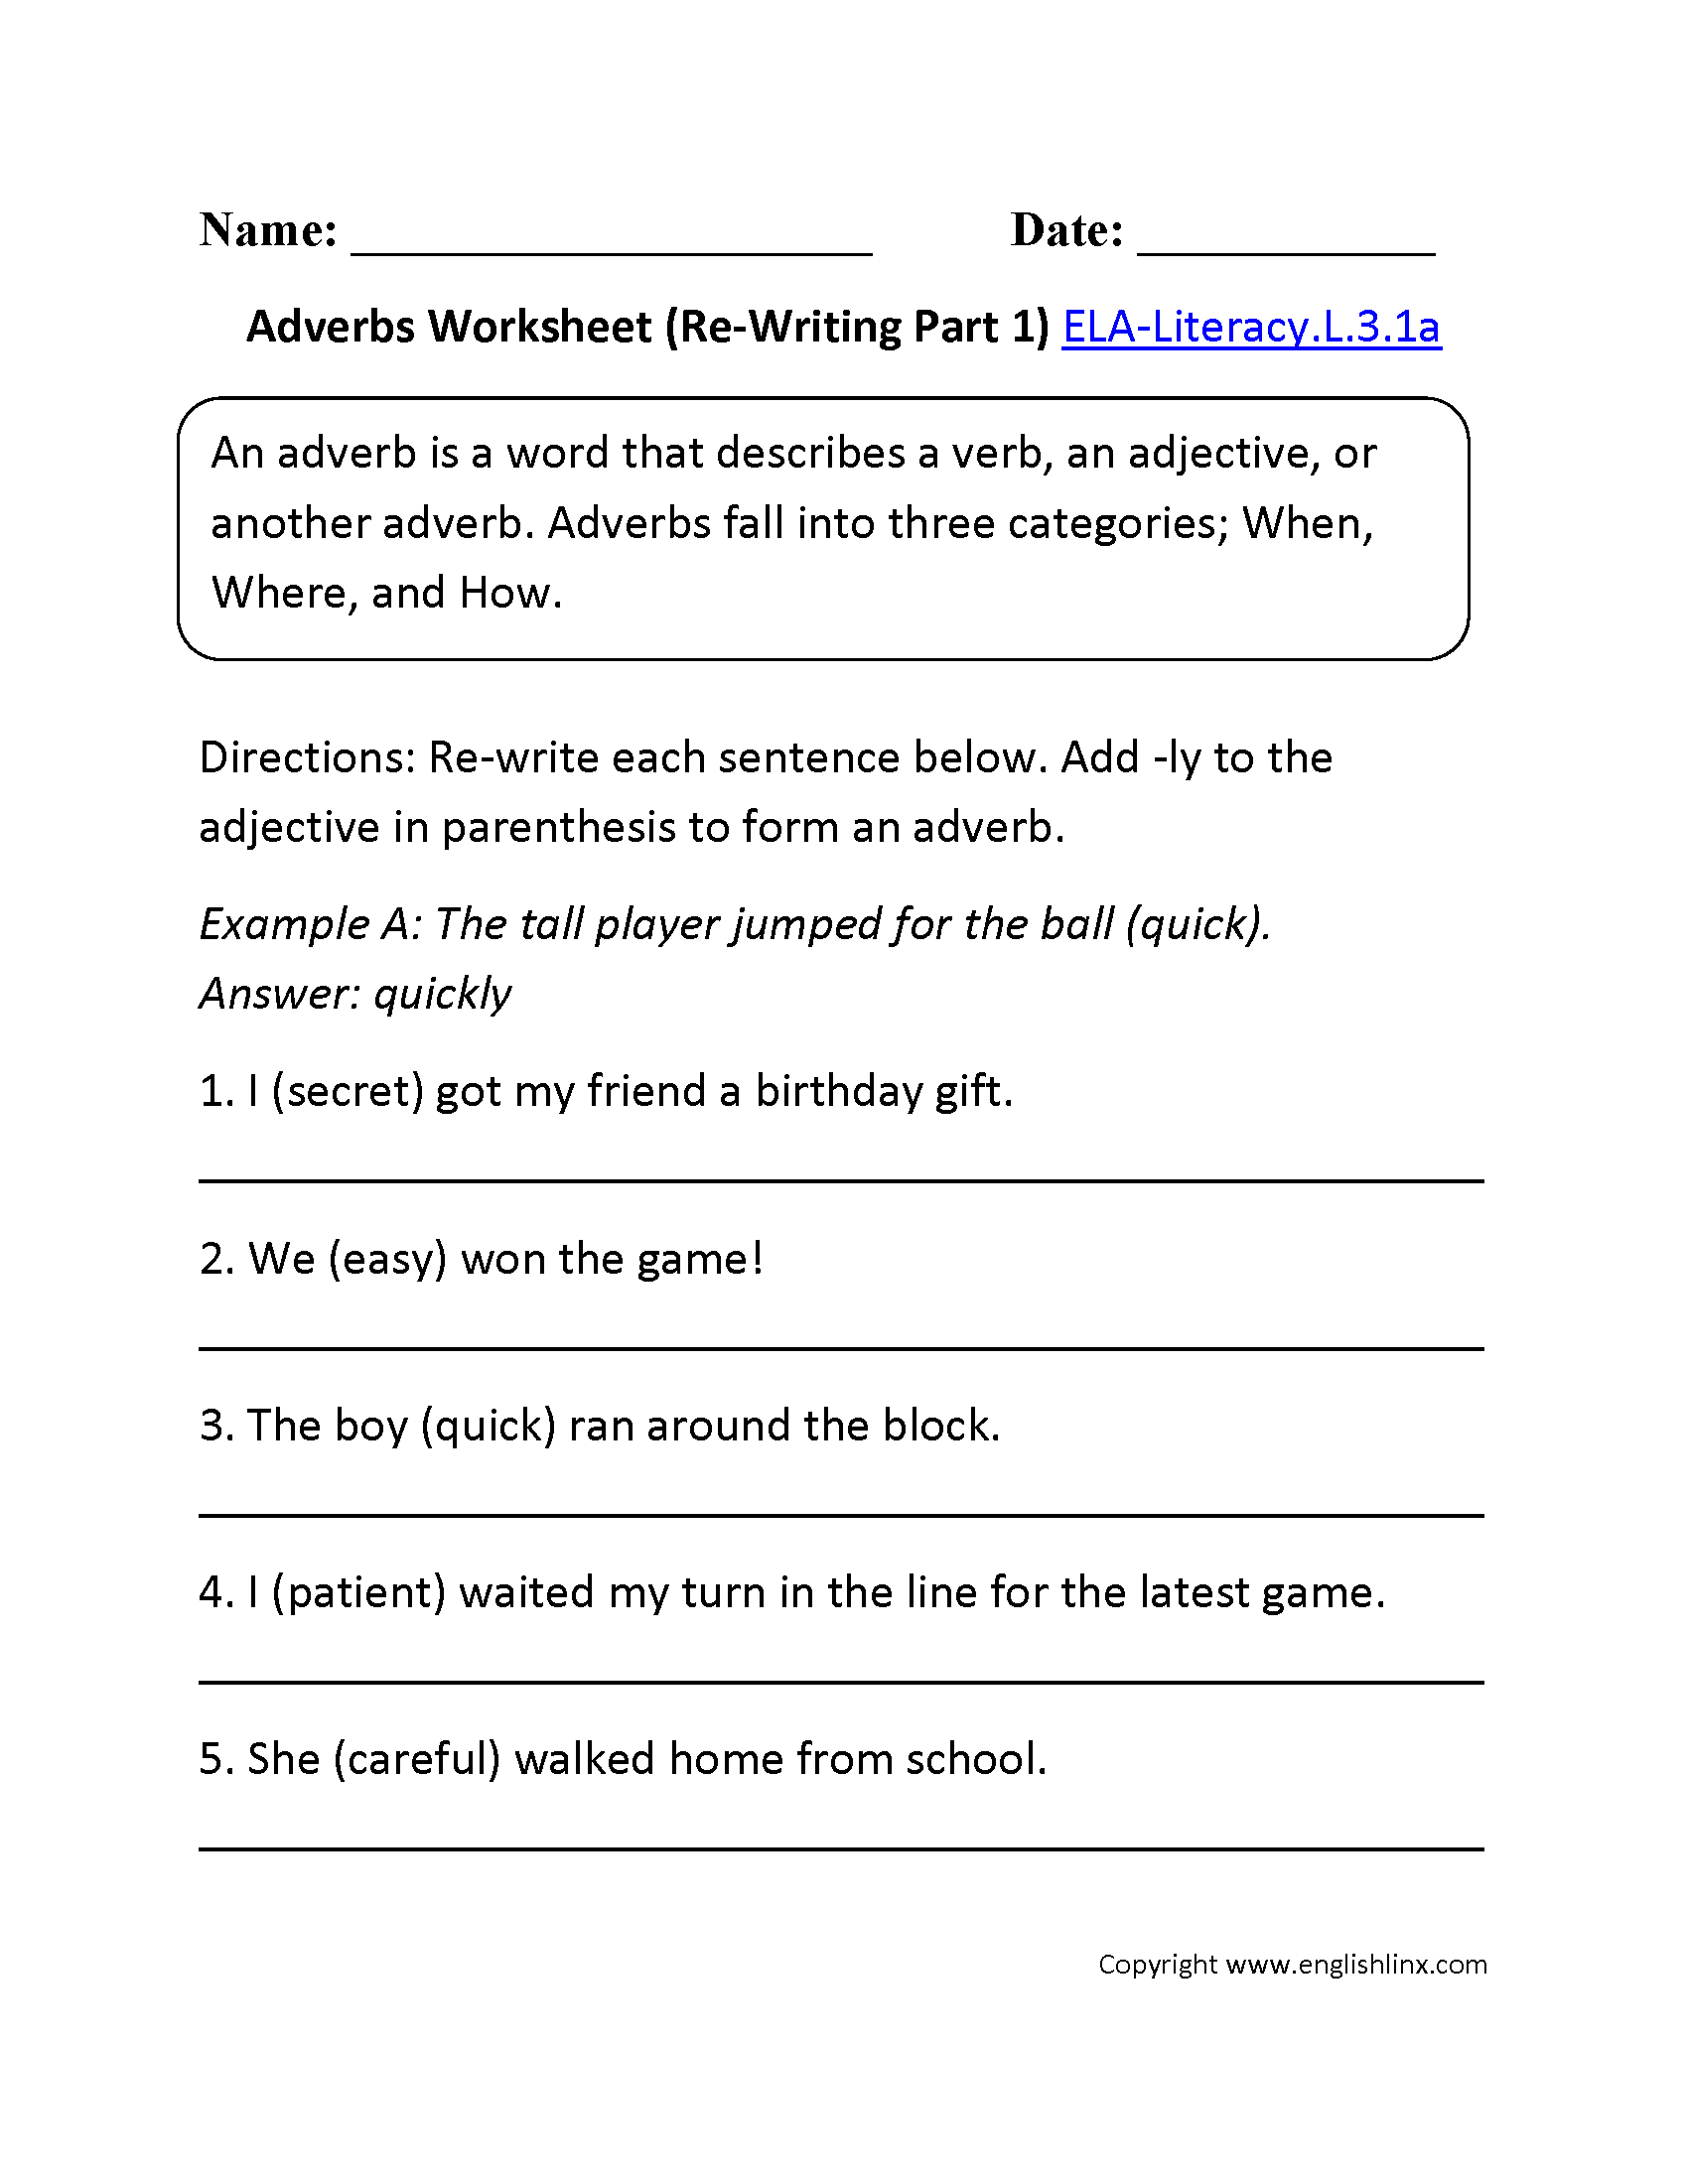 Worksheet Adverbs Worksheets For Grade 3 worksheet adverbs for grade 3 noconformity free 4 memarchoapraga adjectives and worksheets printable